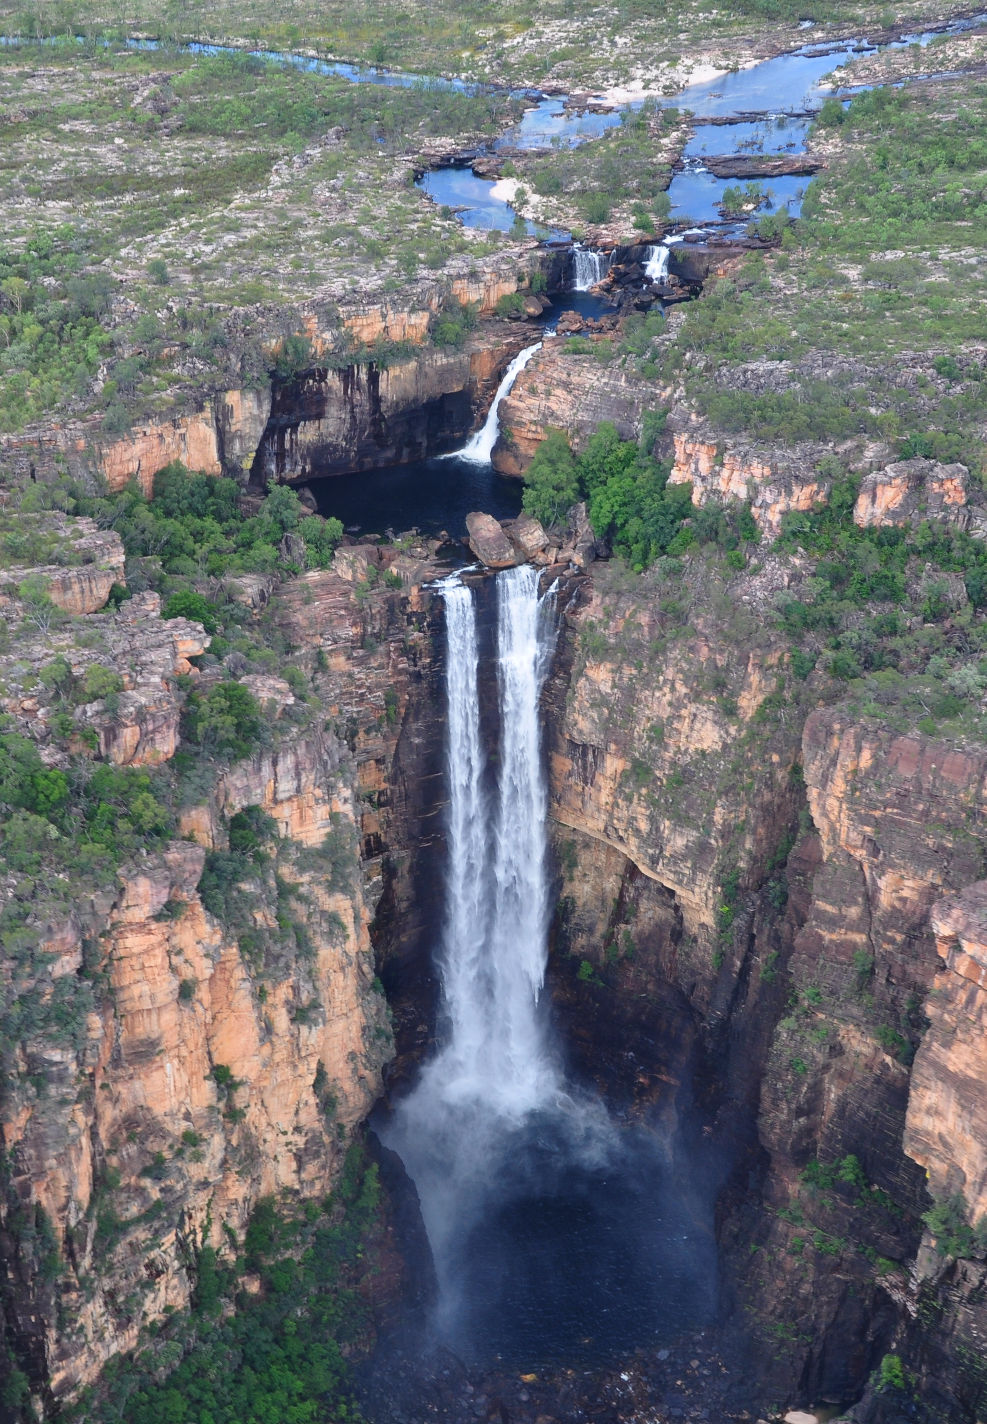 jim falls buddhist singles Significant waterfalls feature is an abrupt plunge of 268 metres down a sheer cliff to create australia's tallest single drop waterfall jim jim falls.